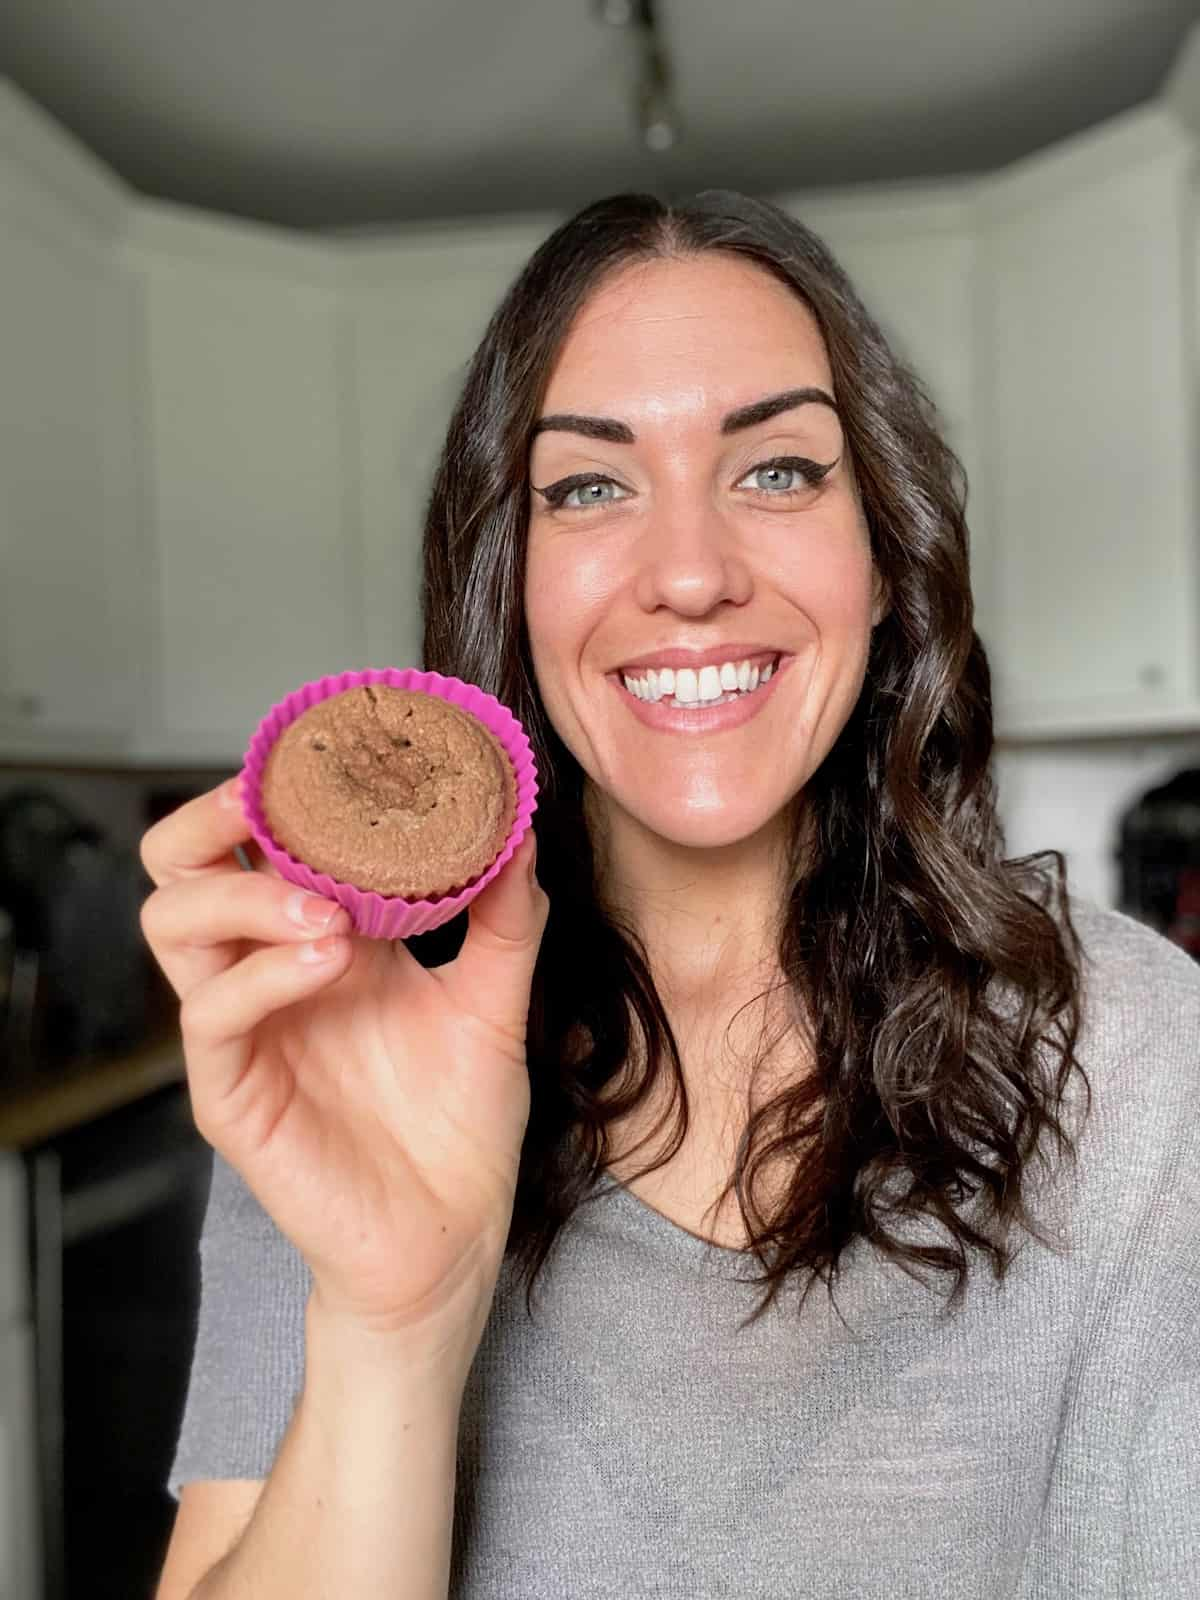 Smiling dark haired woman in grey shirt holding up a keto chocolate muffin in a pink muffin liner